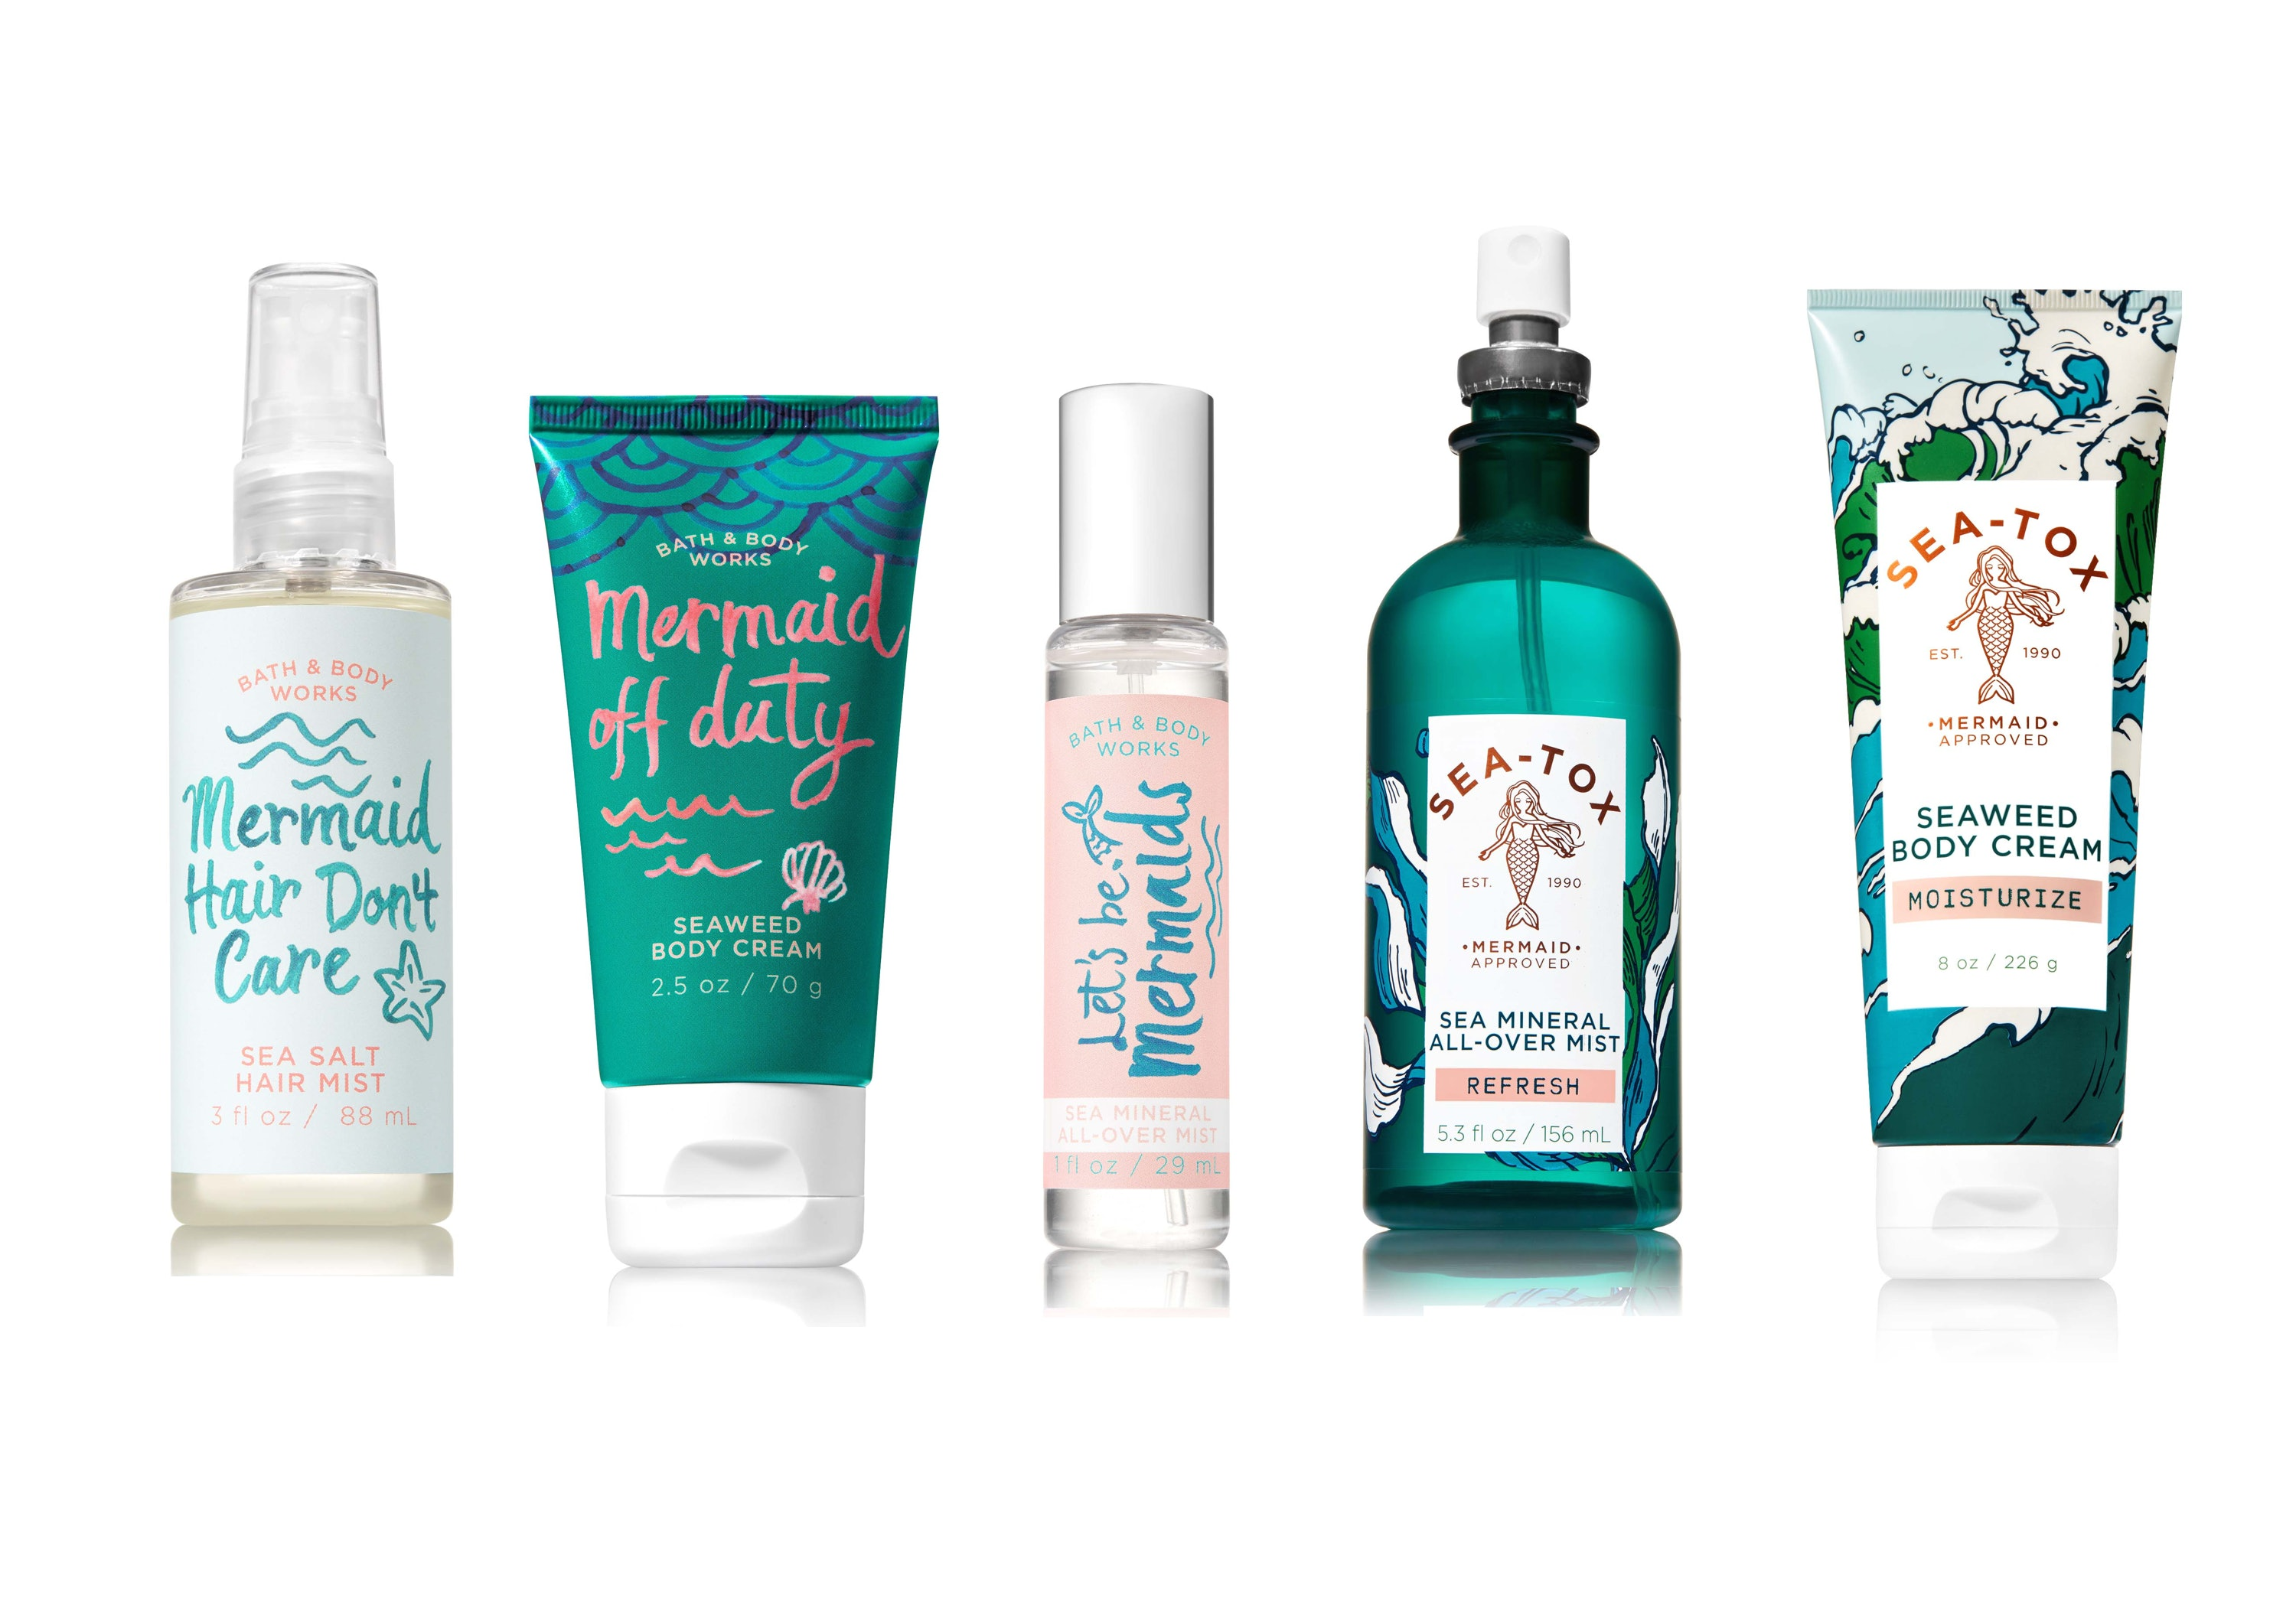 The Bath & Body Works Sea-Tox Mermaid Review Is As Magical As It Sounds